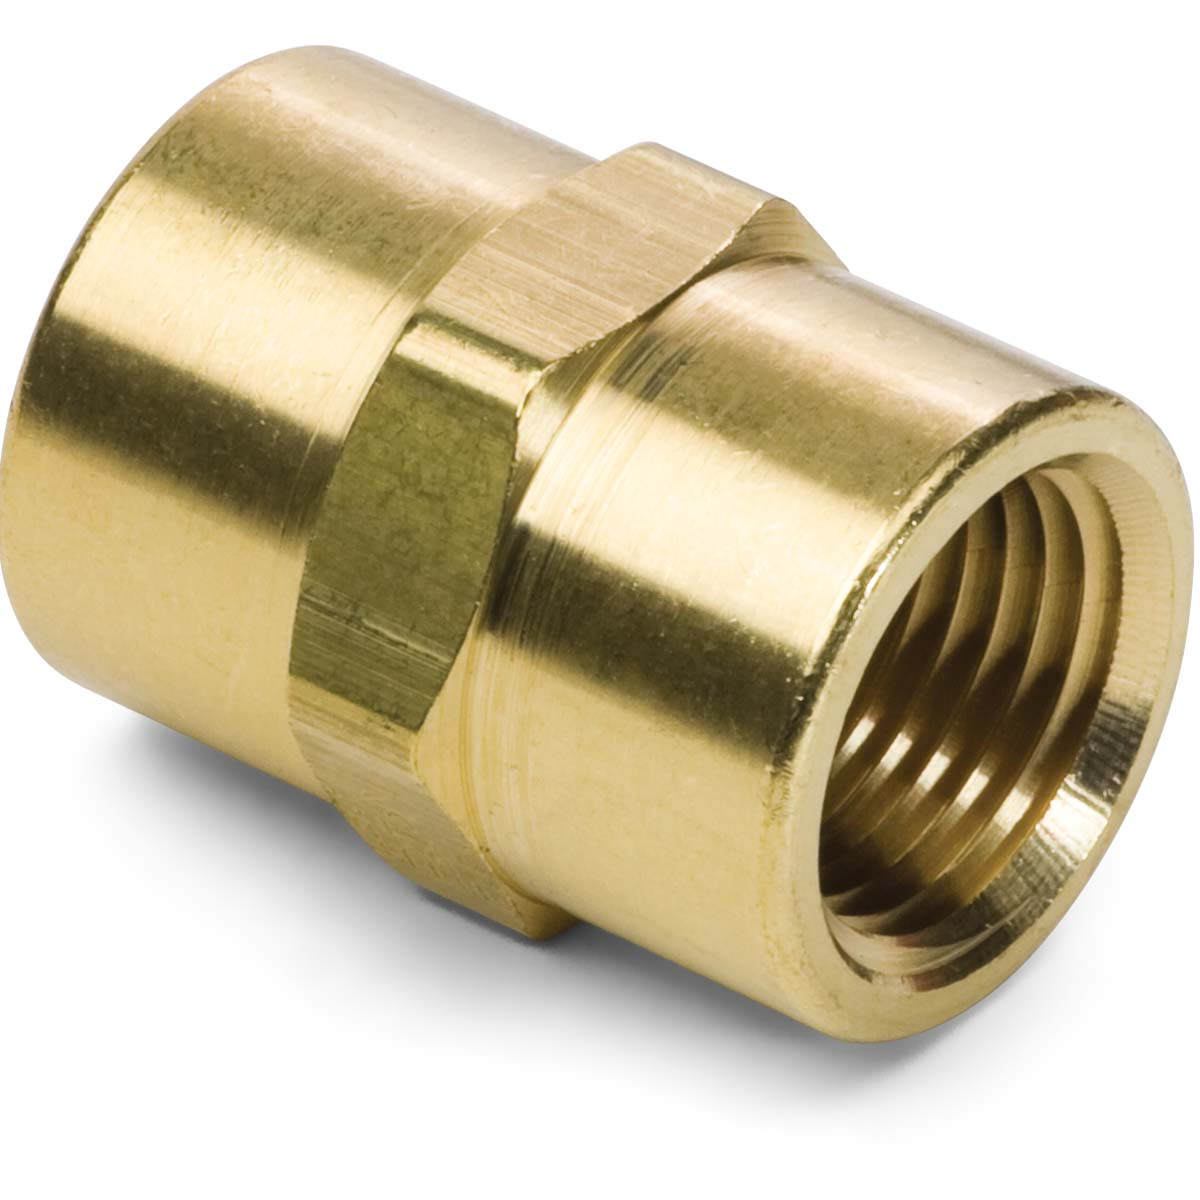 Brass pipe coupling kimball midwest